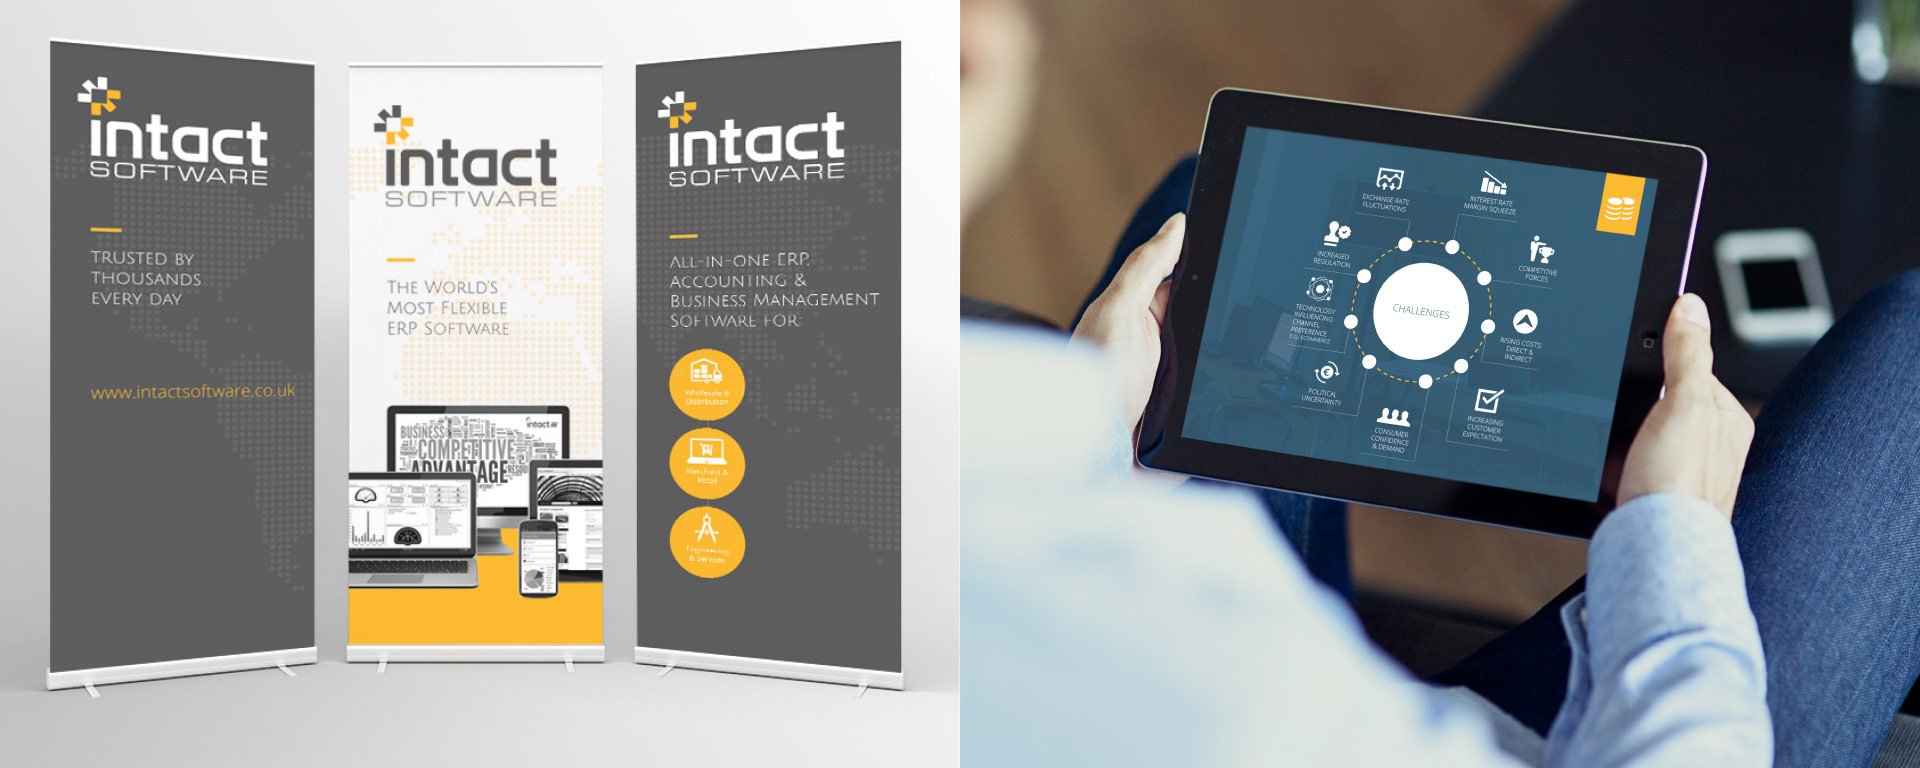 Intact Software Pull up stand and presentation design.